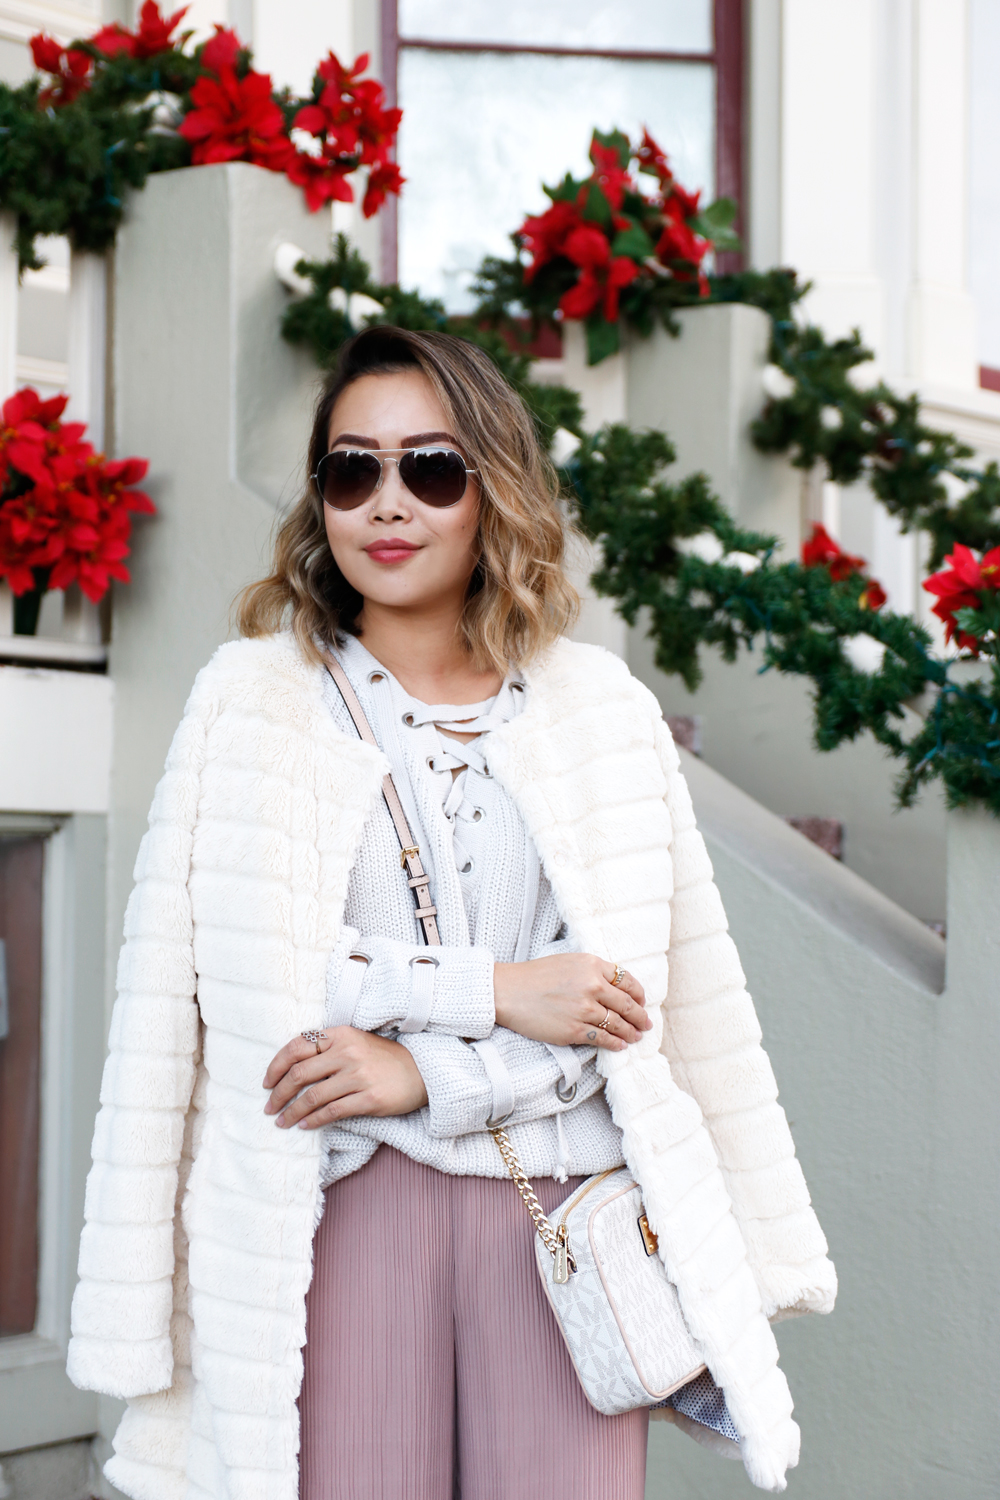 04holiday-christmas-neutral-pastel-sf-sanfrancisco-fashion-style